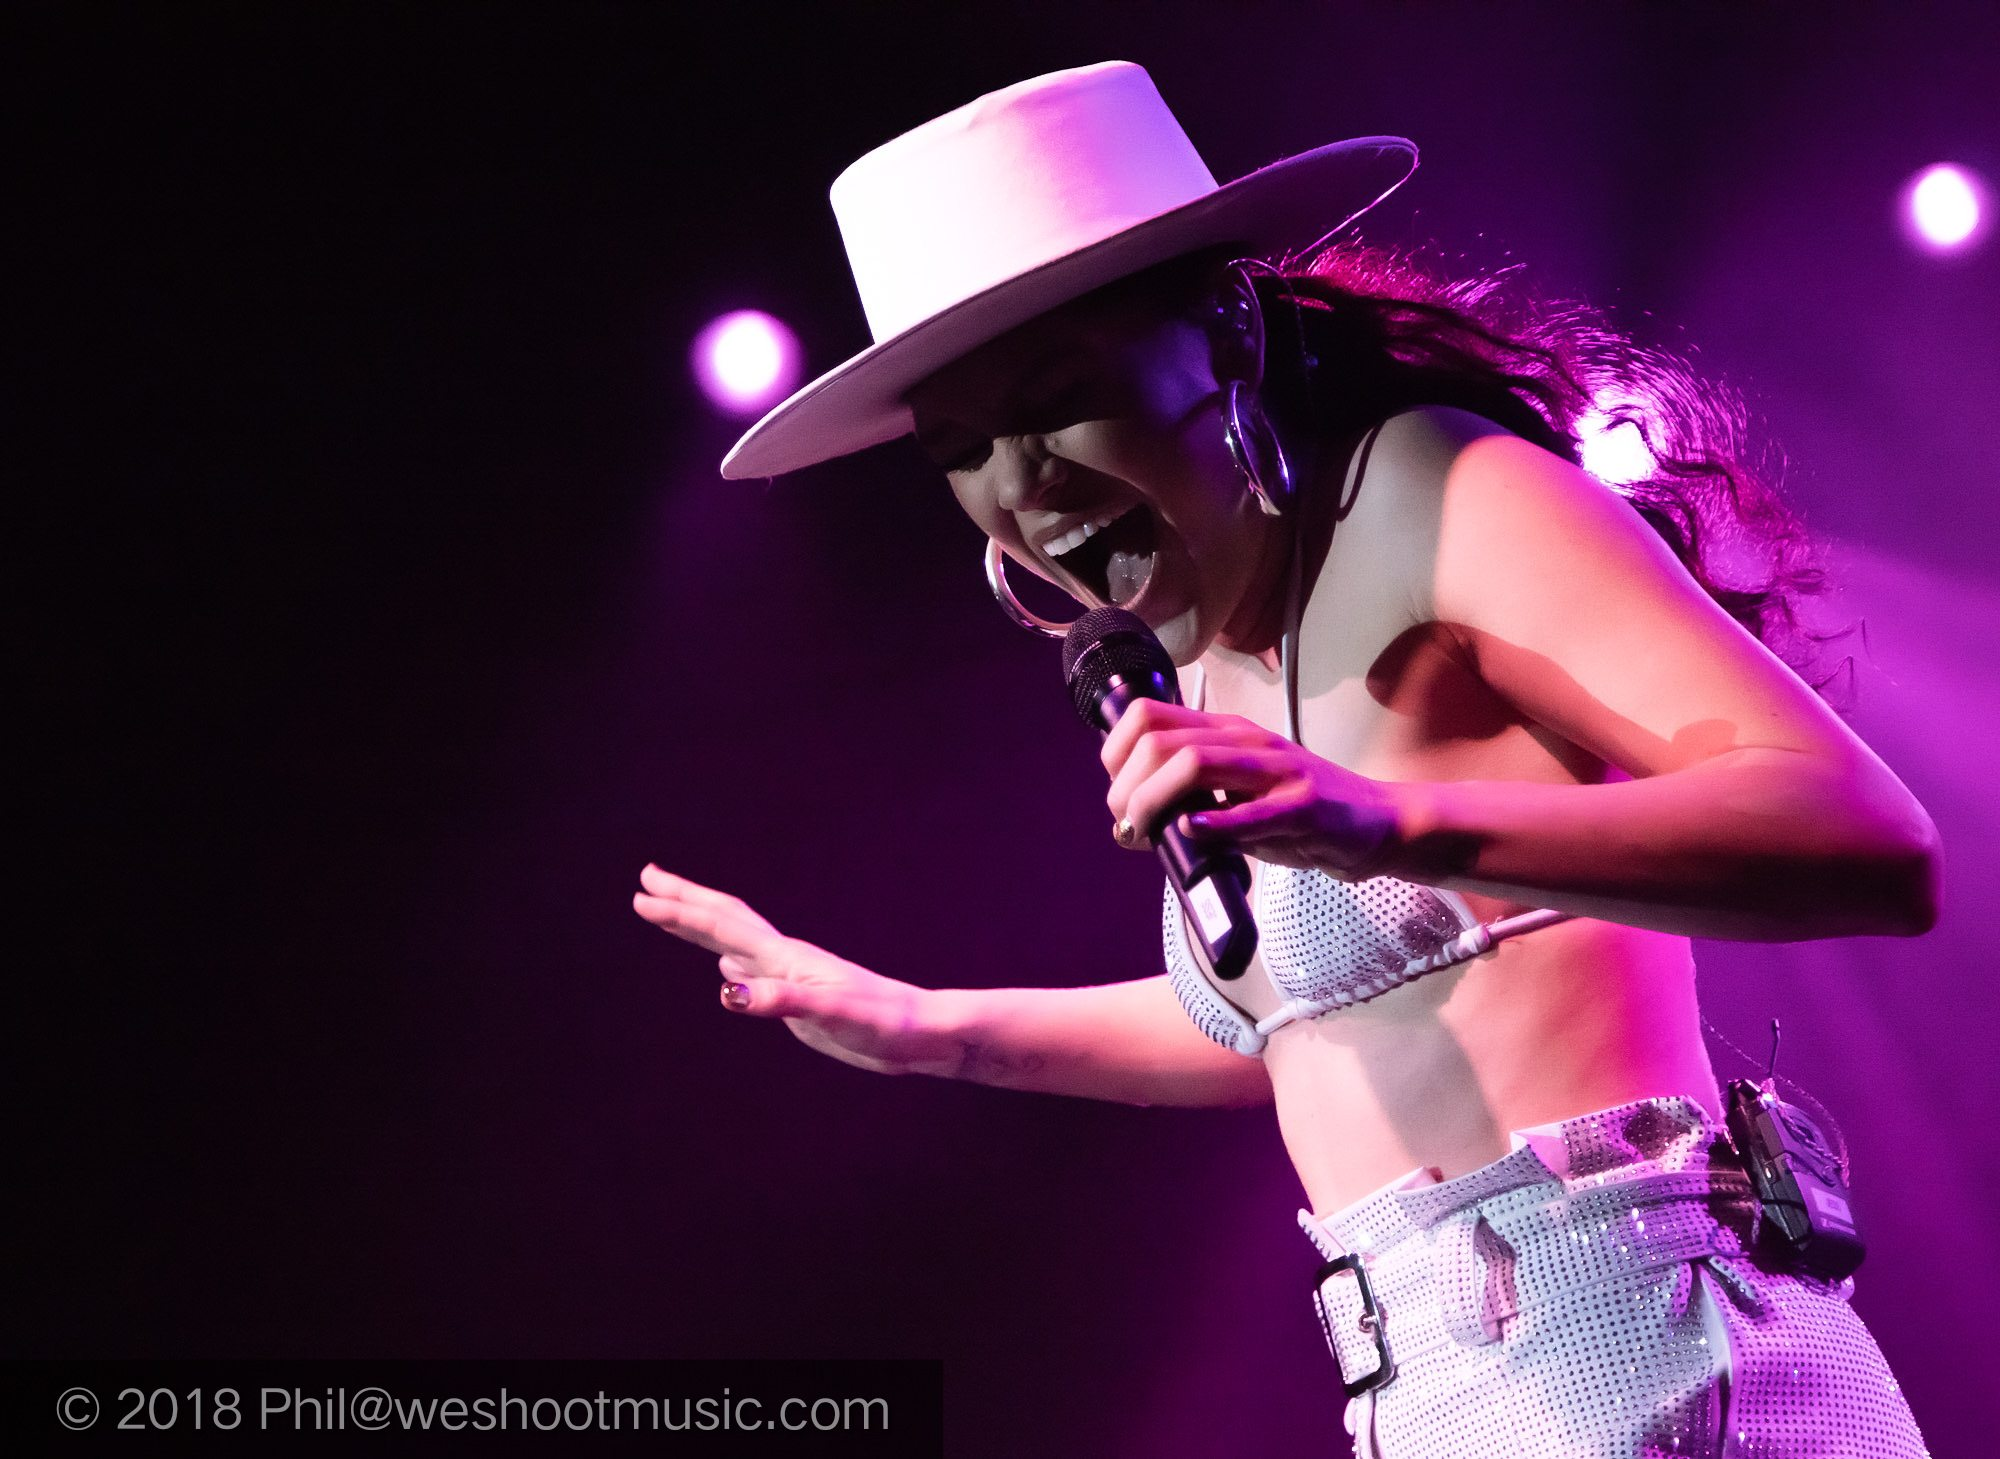 Jessie J at the Manchester Academy